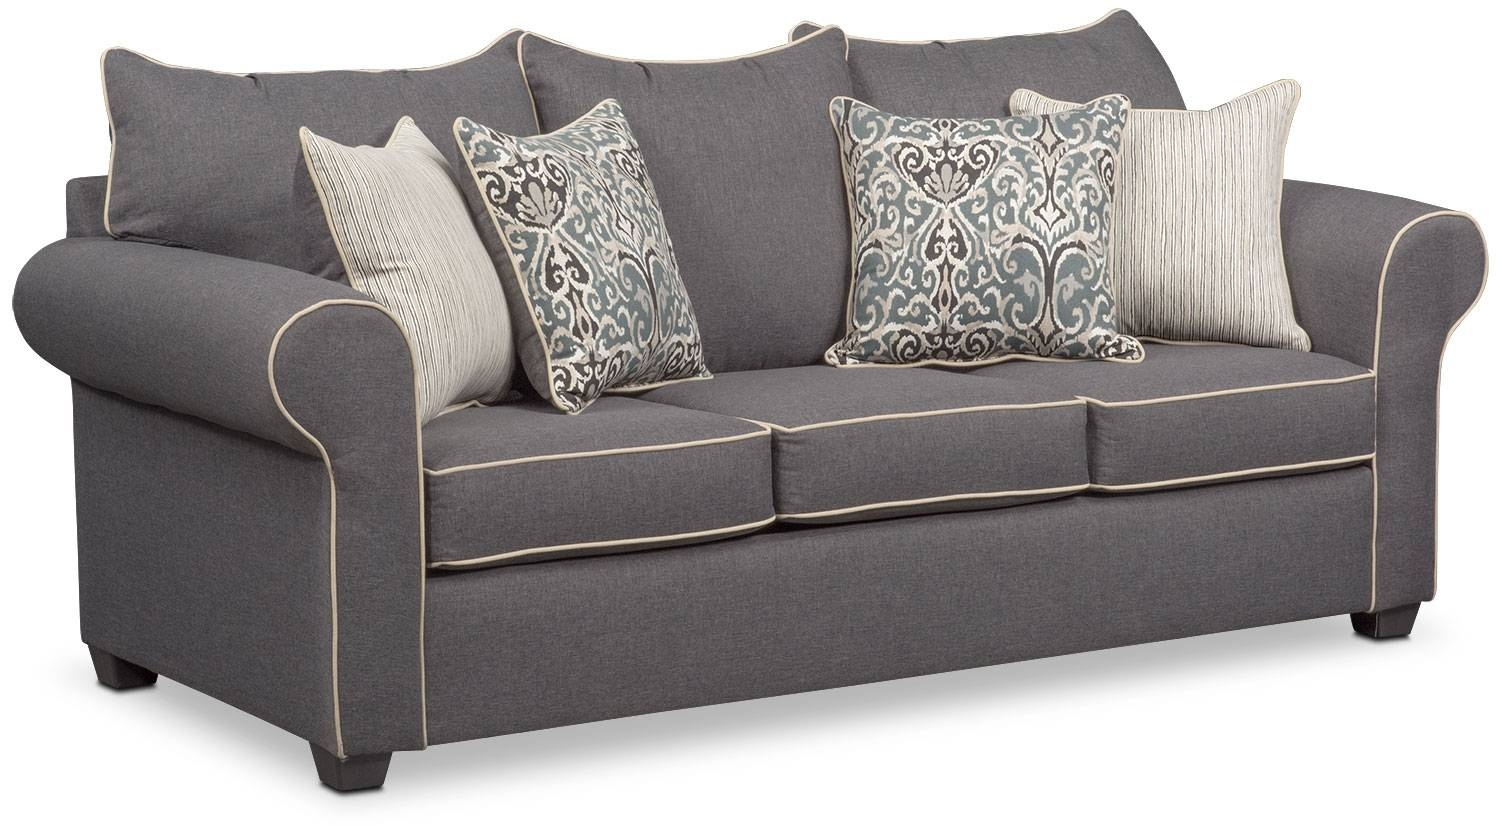 Carla Sofa - Gray | Value City Furniture with Value City Sofas (Image 2 of 25)